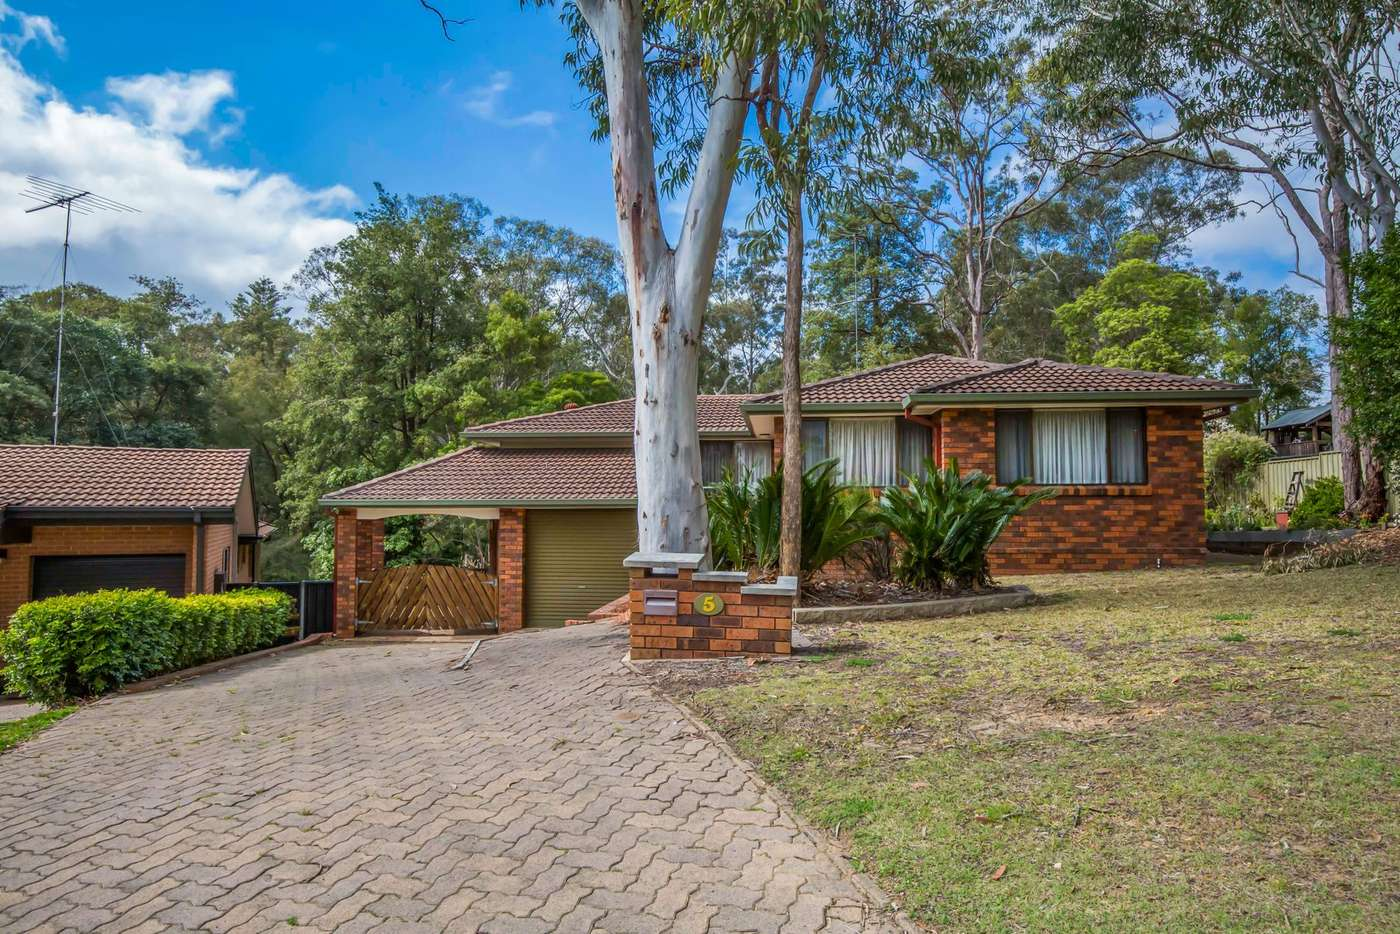 Main view of Homely house listing, 5 Gullalie Circle, Blaxland NSW 2774